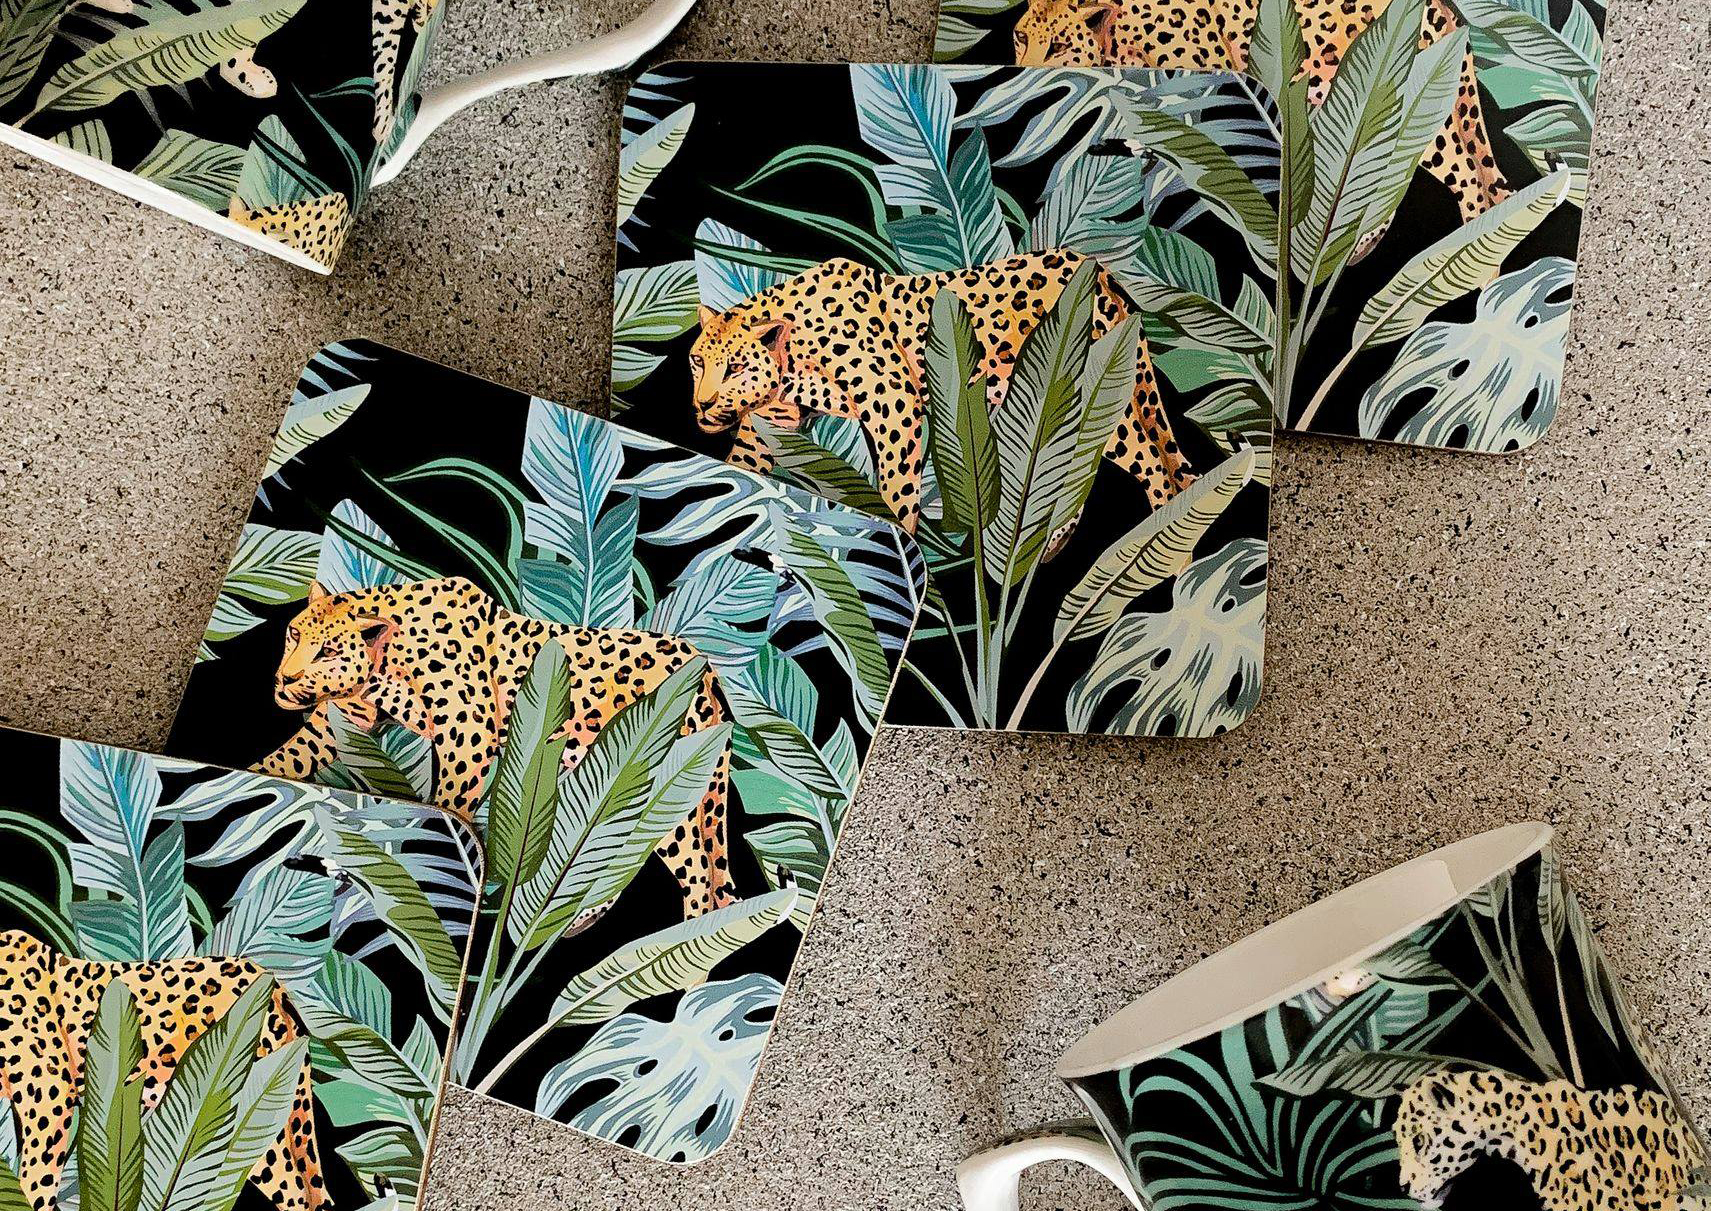 Drinks mats with leopards and large plant leaves printed on them.